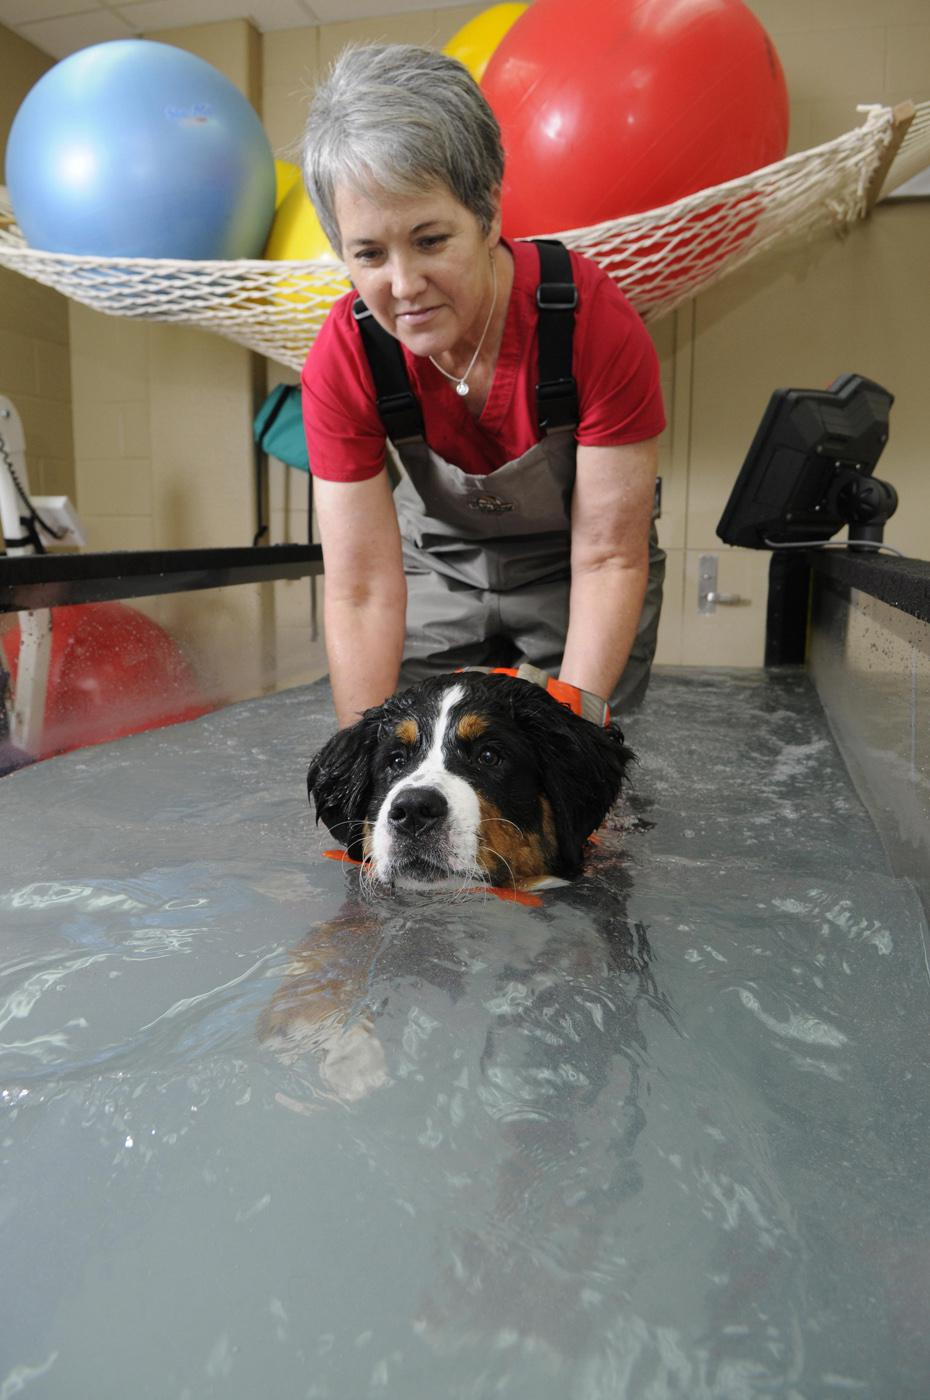 Ruby Lynn Carter, a certified physical rehabilitationist, works at Mississippi State University's College of Veterinary Medicine where she helps injured animals, such as Leia, restore muscle strength and mobility and maintain their cardiovascular health. (Photo by Tom Thompson)